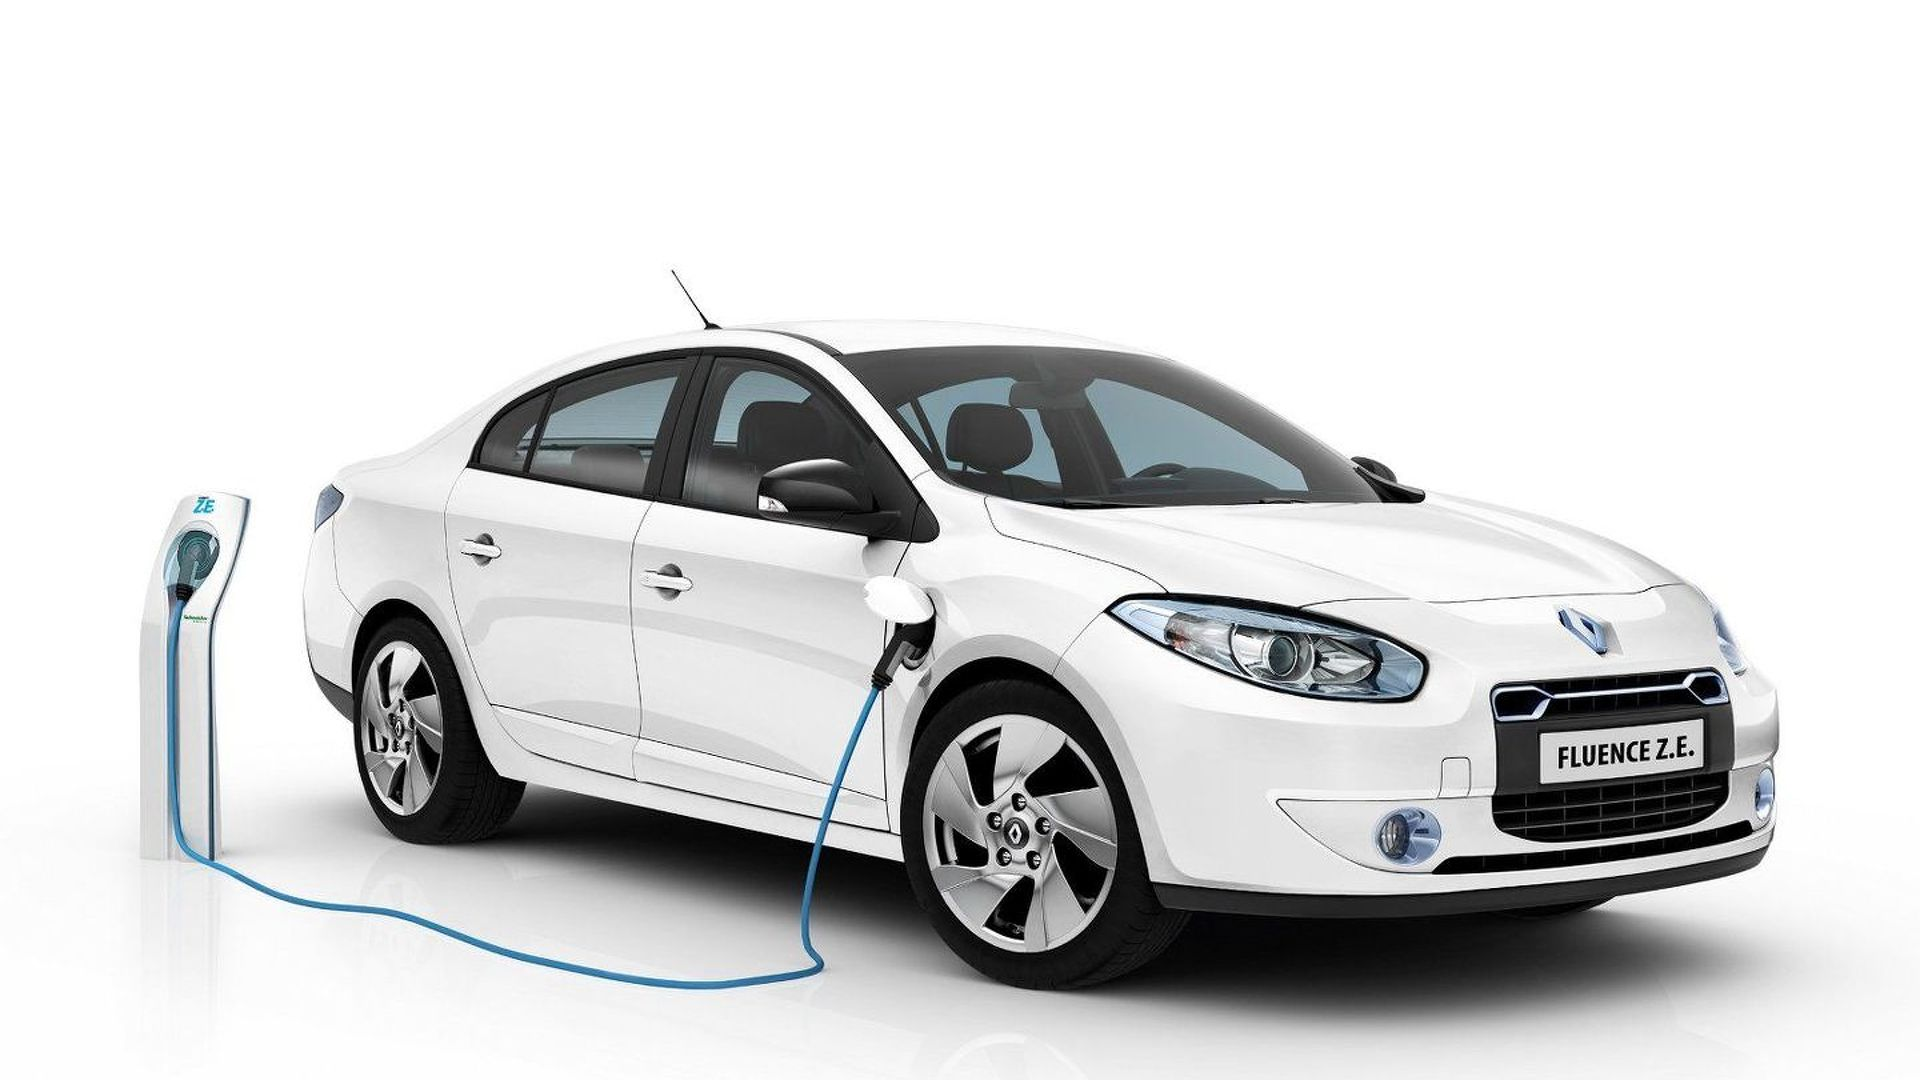 Renault & Dongfeng creating a Fluence Z.E. based model for China